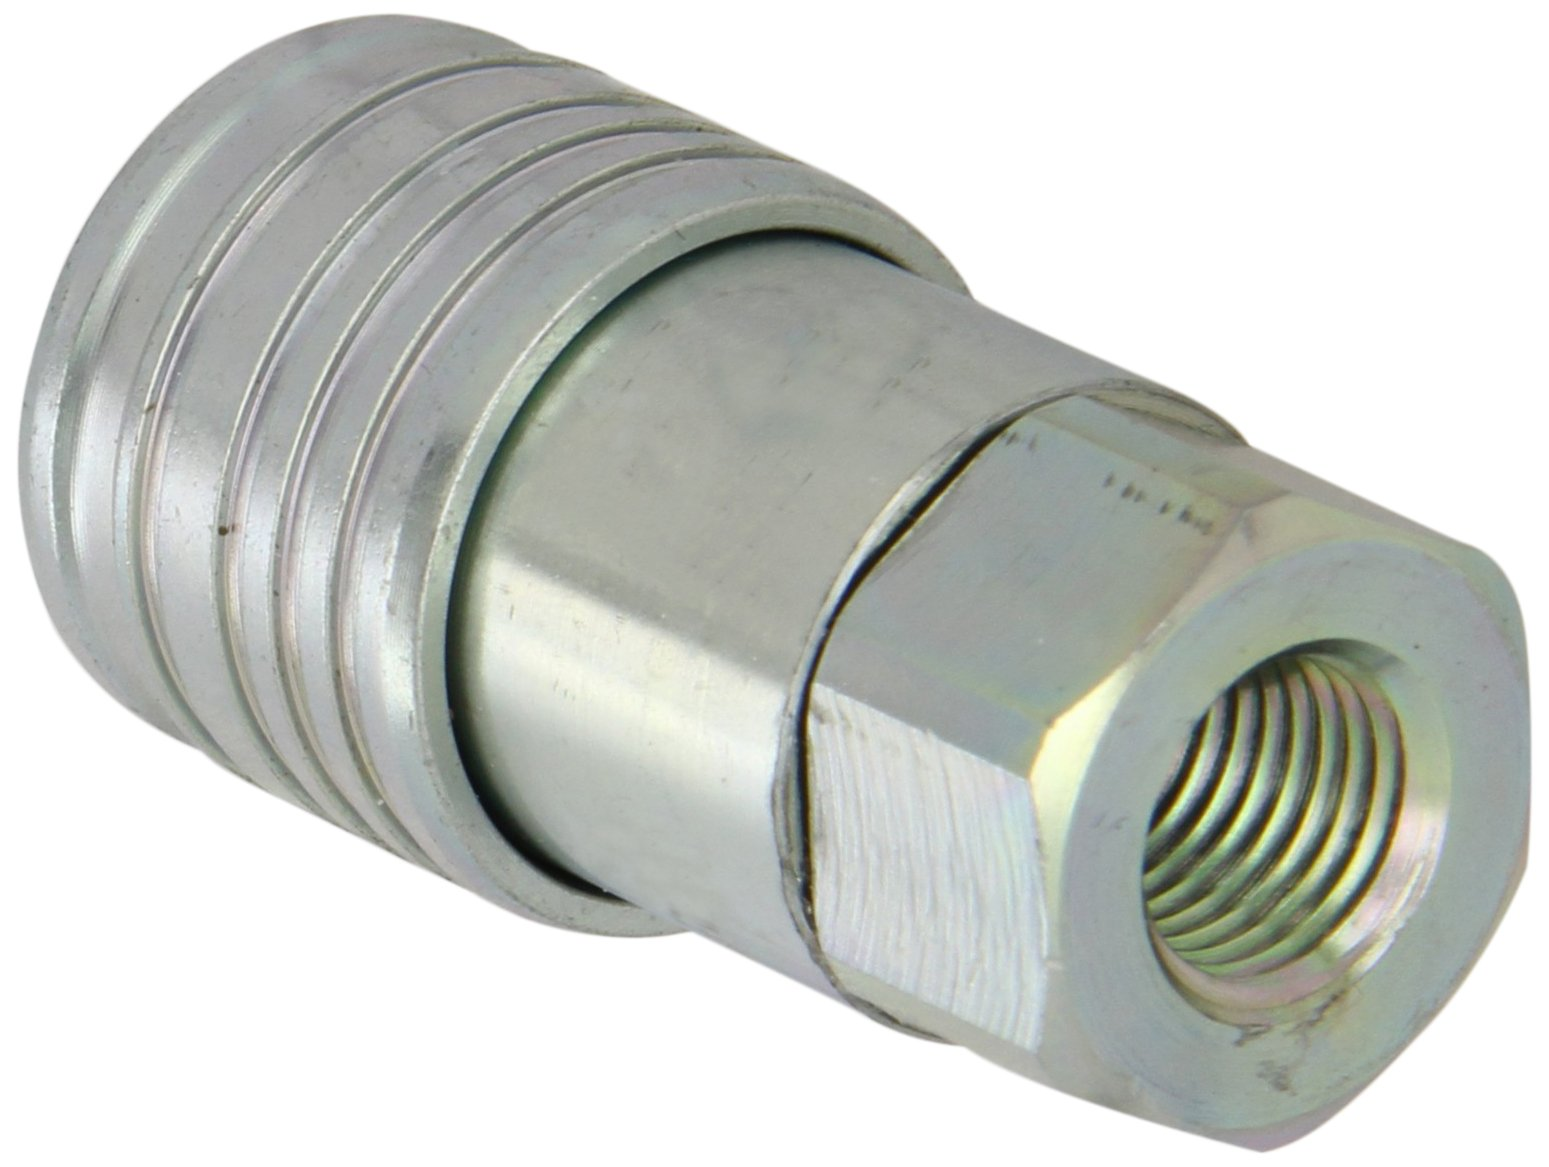 Dixon 2HTF2 Steel Flush Face Hydraulic Quick-Connect Fitting, Coupler, 1/4 Coupling x 1/4-18 NPTF